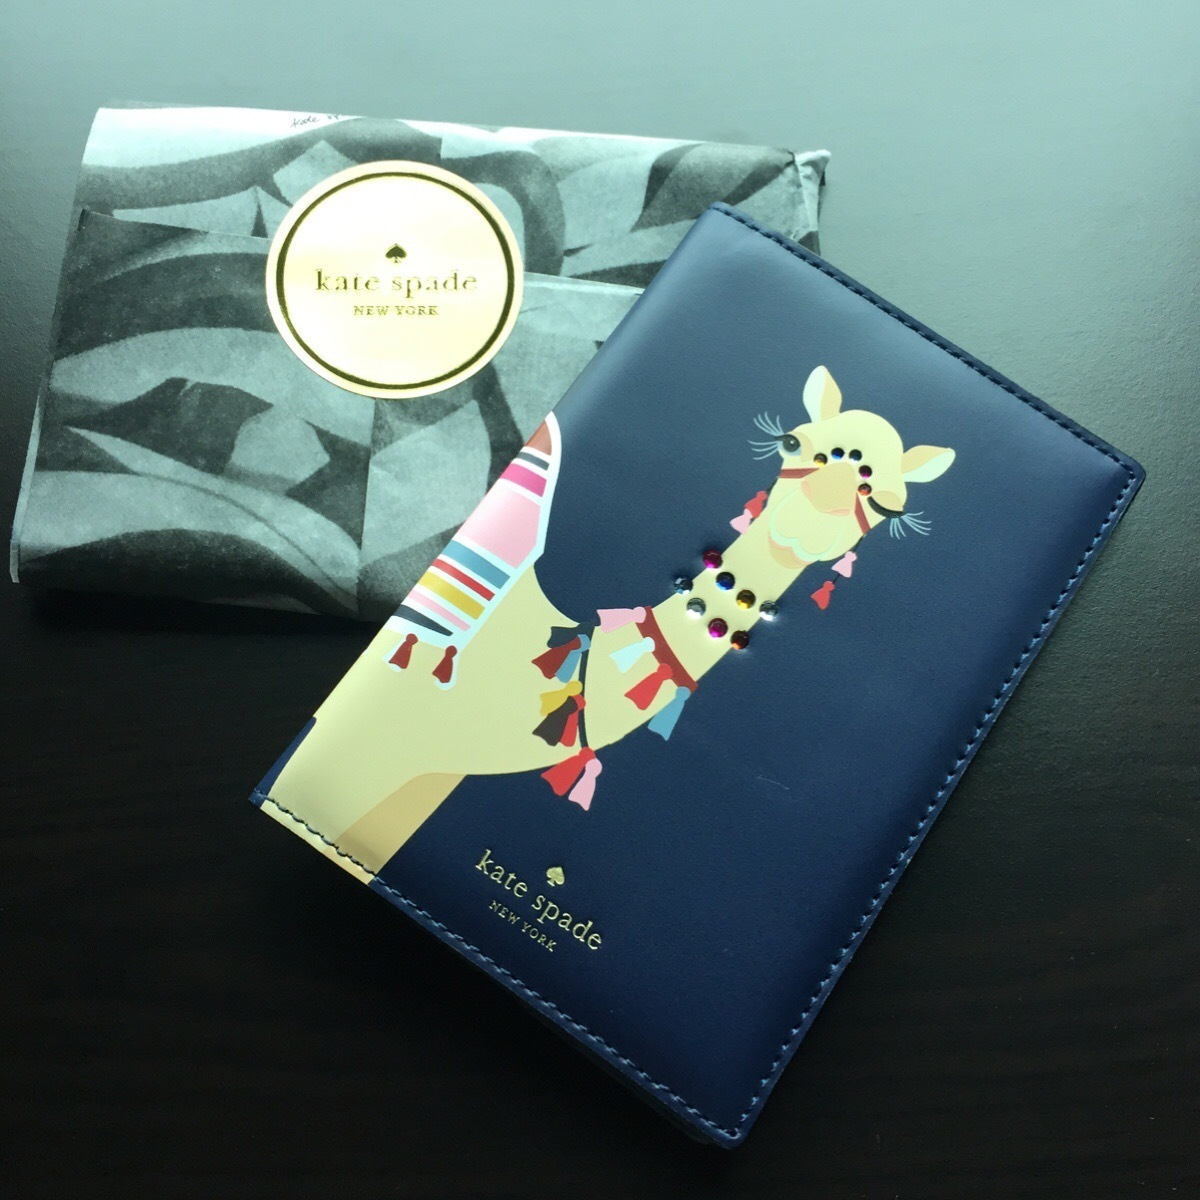 kate spade / Passport holder / spice things up camel